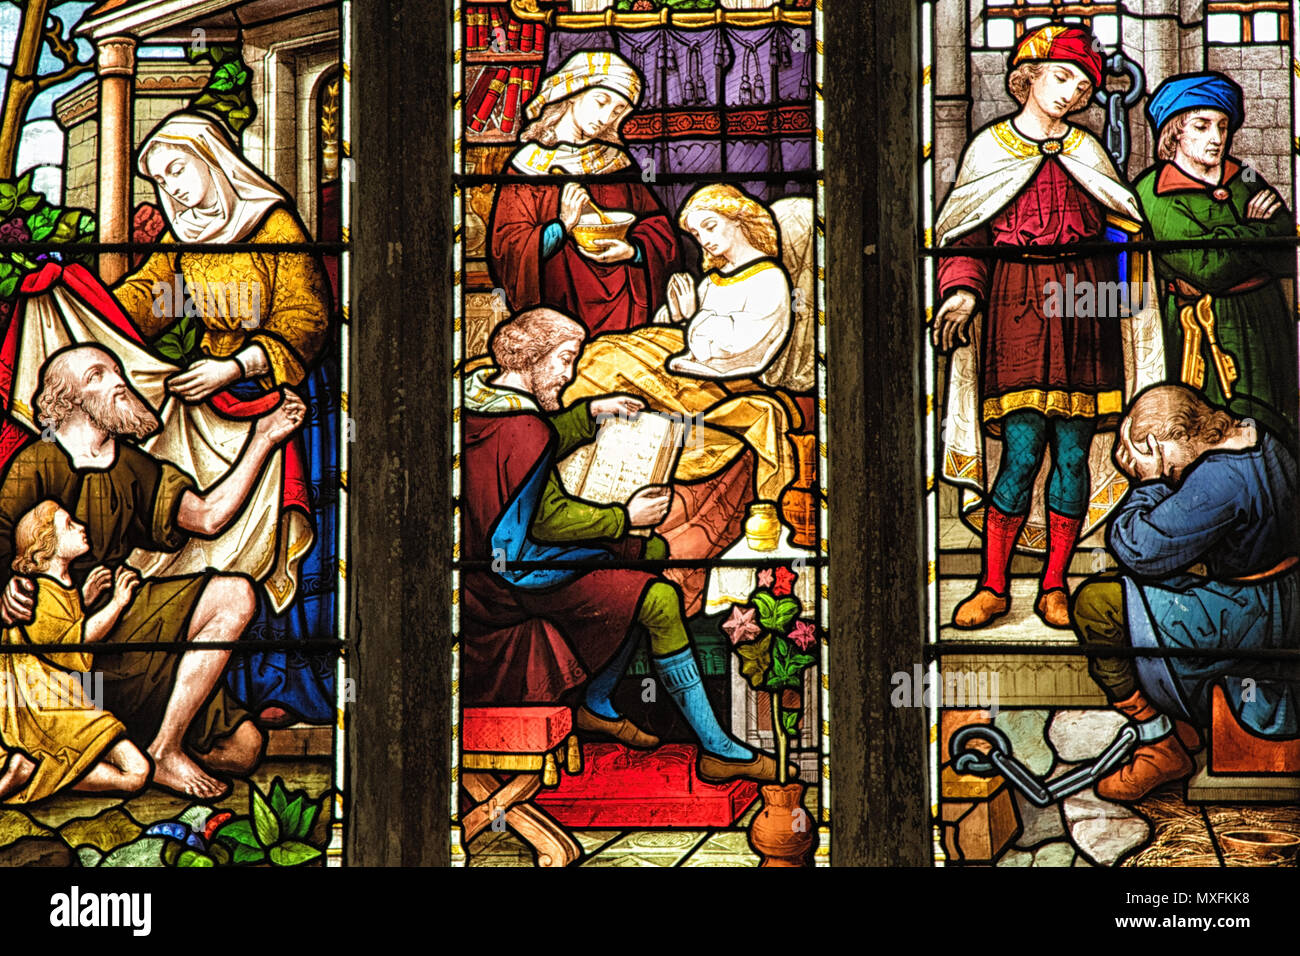 Colourful stained glass windows at All Saints Church,Otley,West Yorkshire,England,UK. - Stock Image